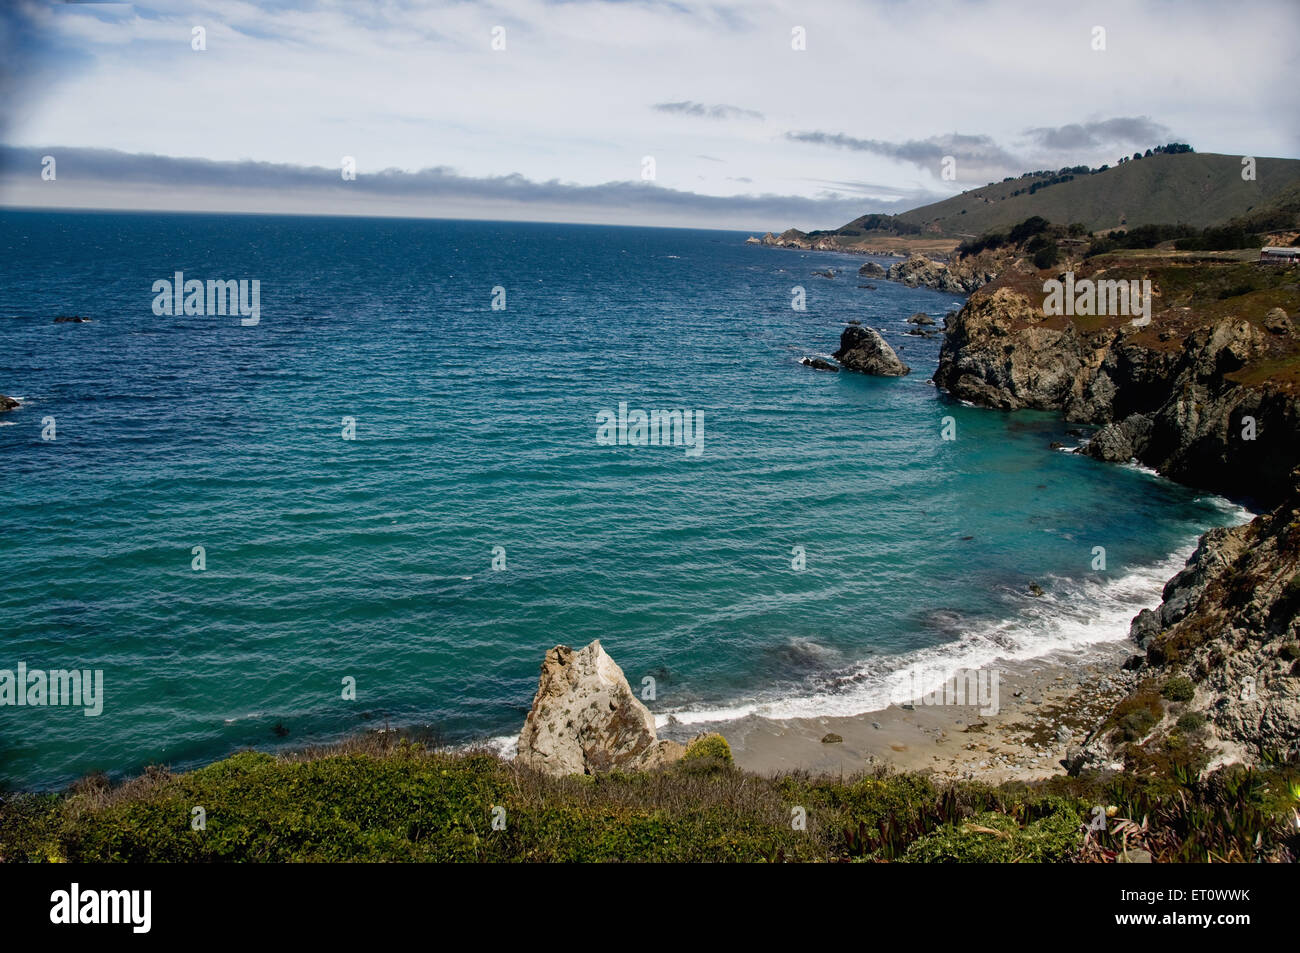 Seascape and rock at Palm beach ; California ; USA United States of America - Stock Image